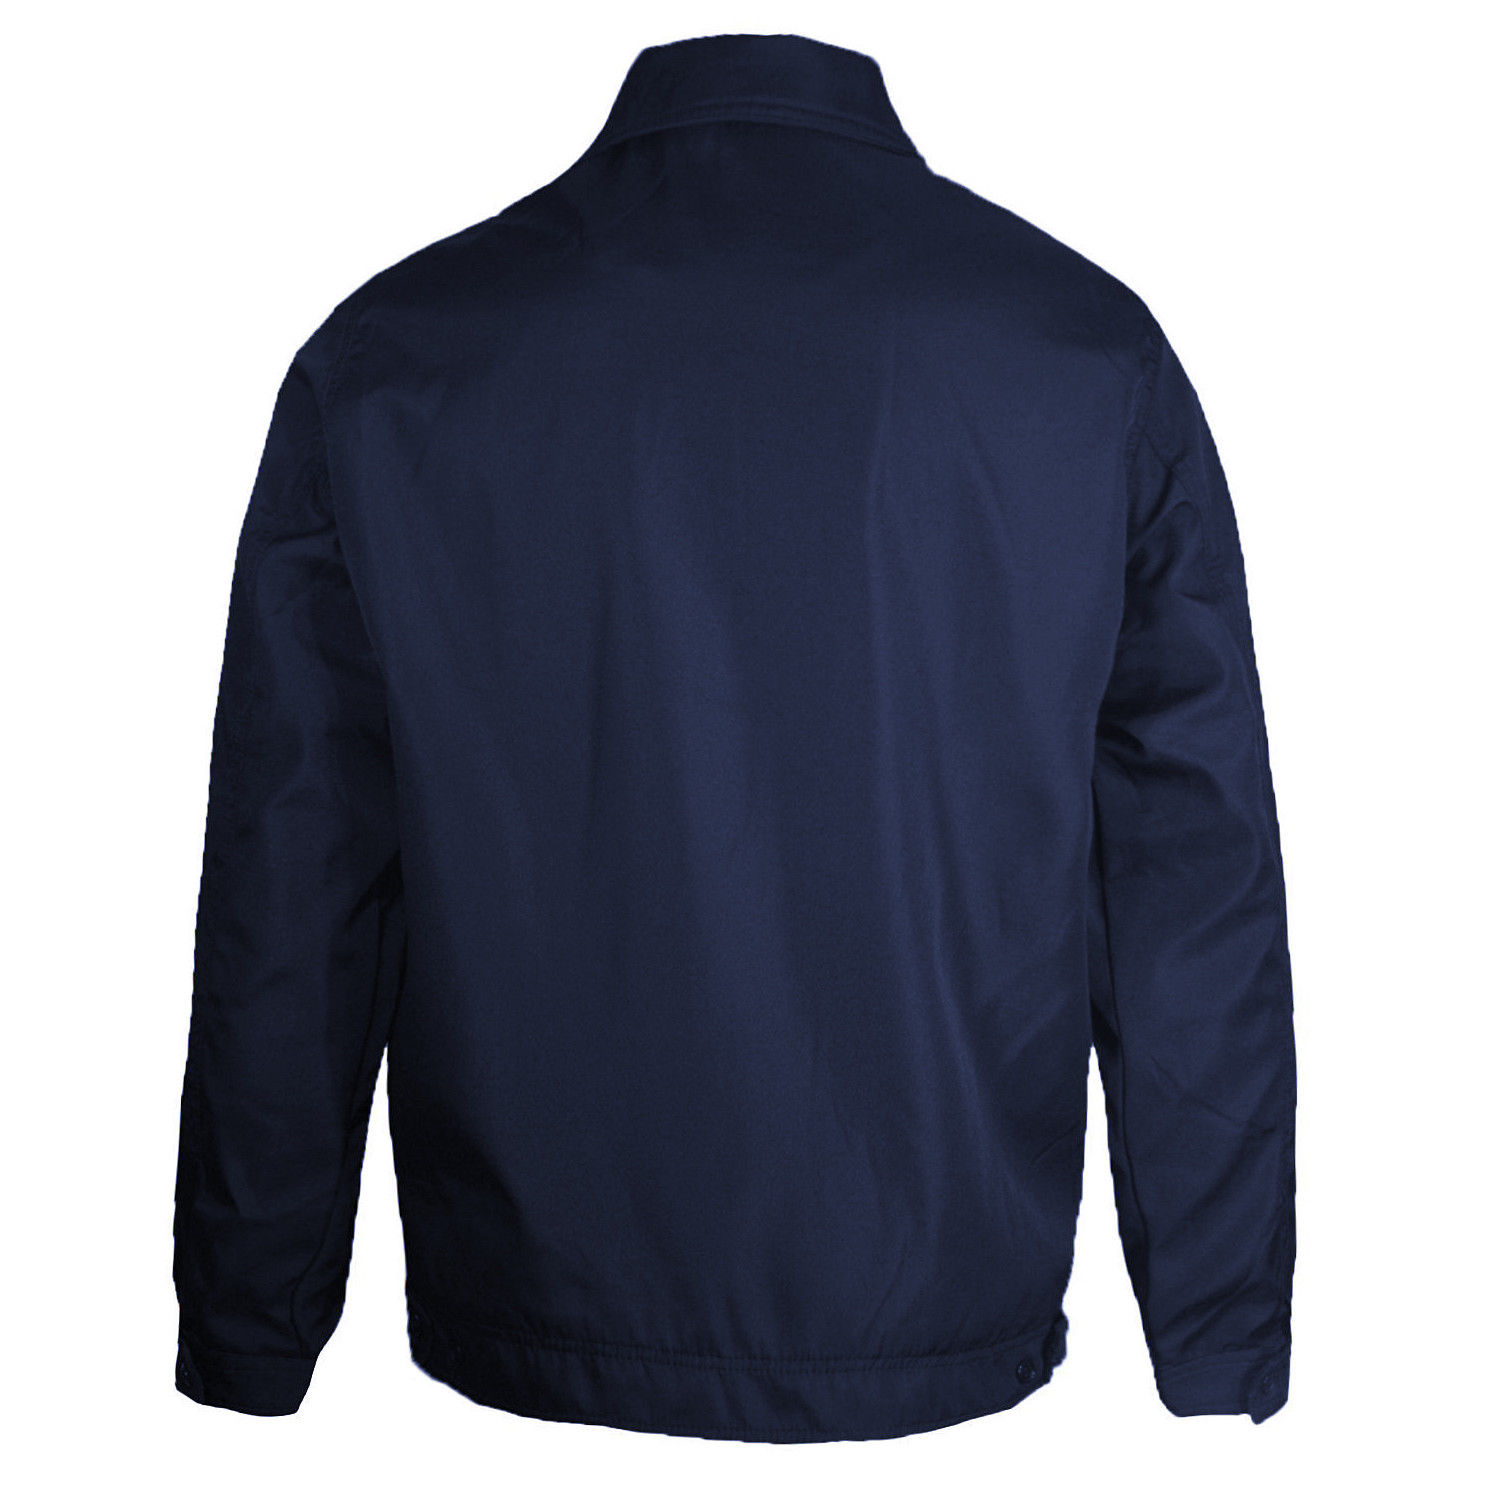 Men-039-s-Microfiber-Golf-Sport-Water-Resistant-Zip-Up-Windbreaker-Jacket-BENNY thumbnail 20